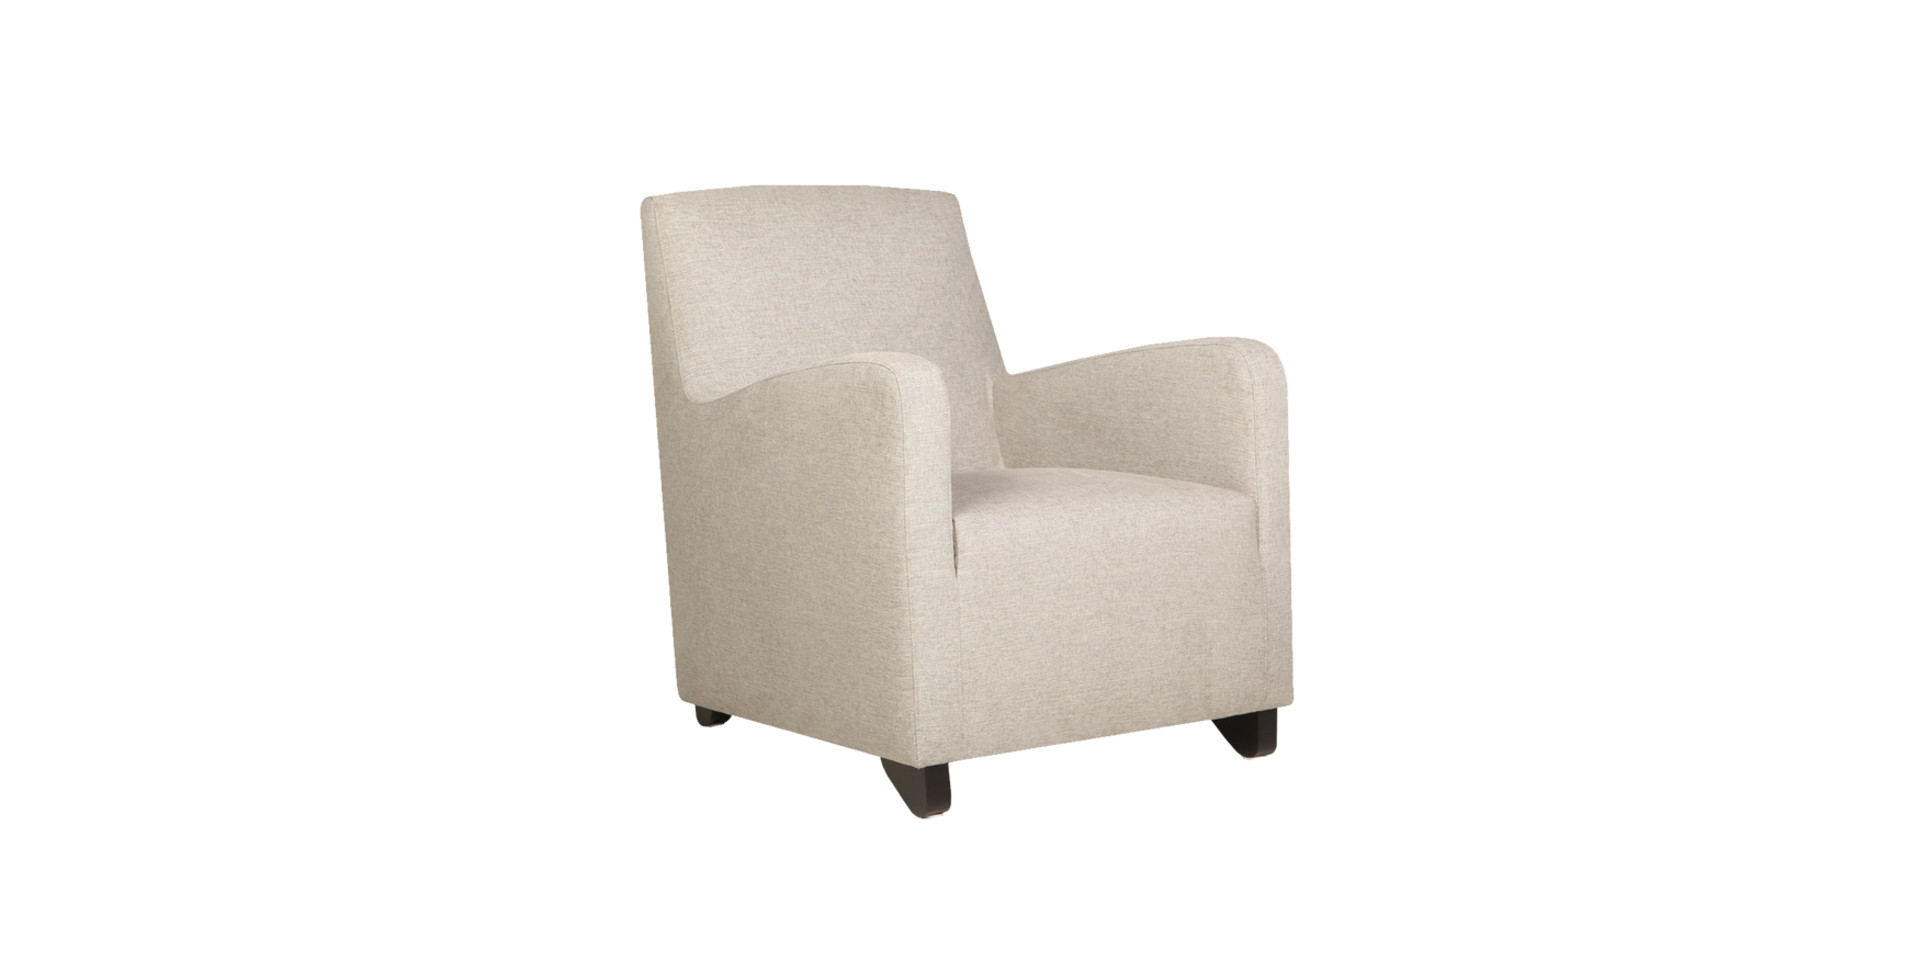 sits-mattis-fauteuil-armchair_drom11_light_brown_2